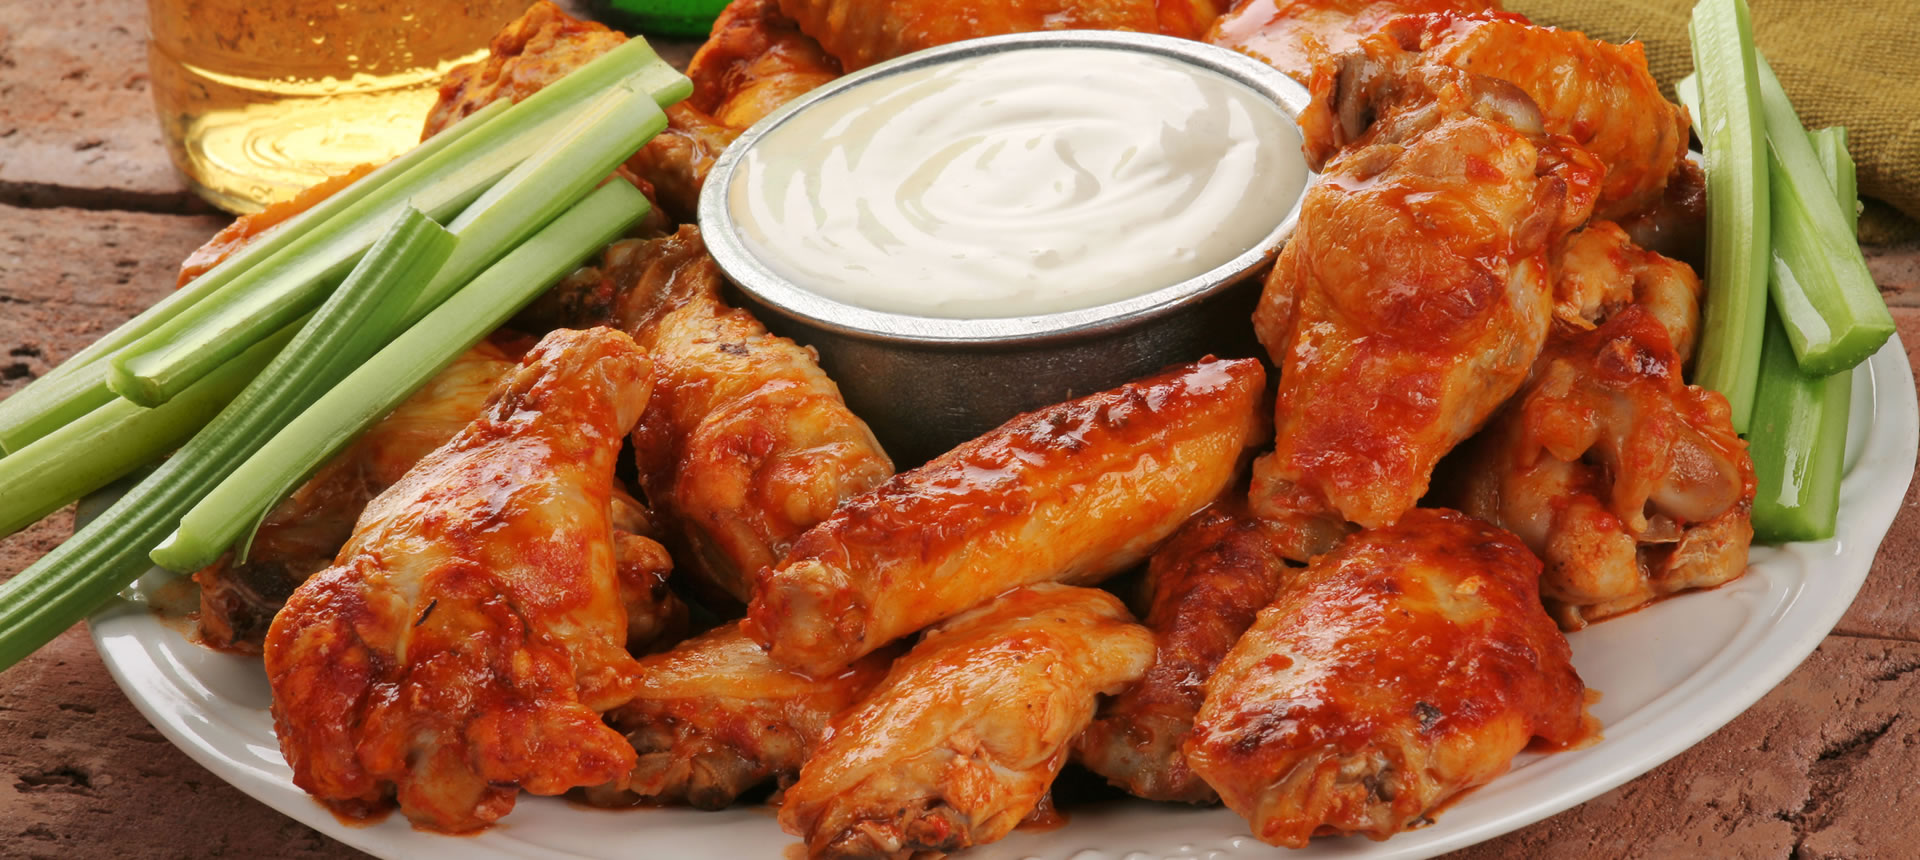 Preparing the Most Delicious Chicken Hot Wings Ever